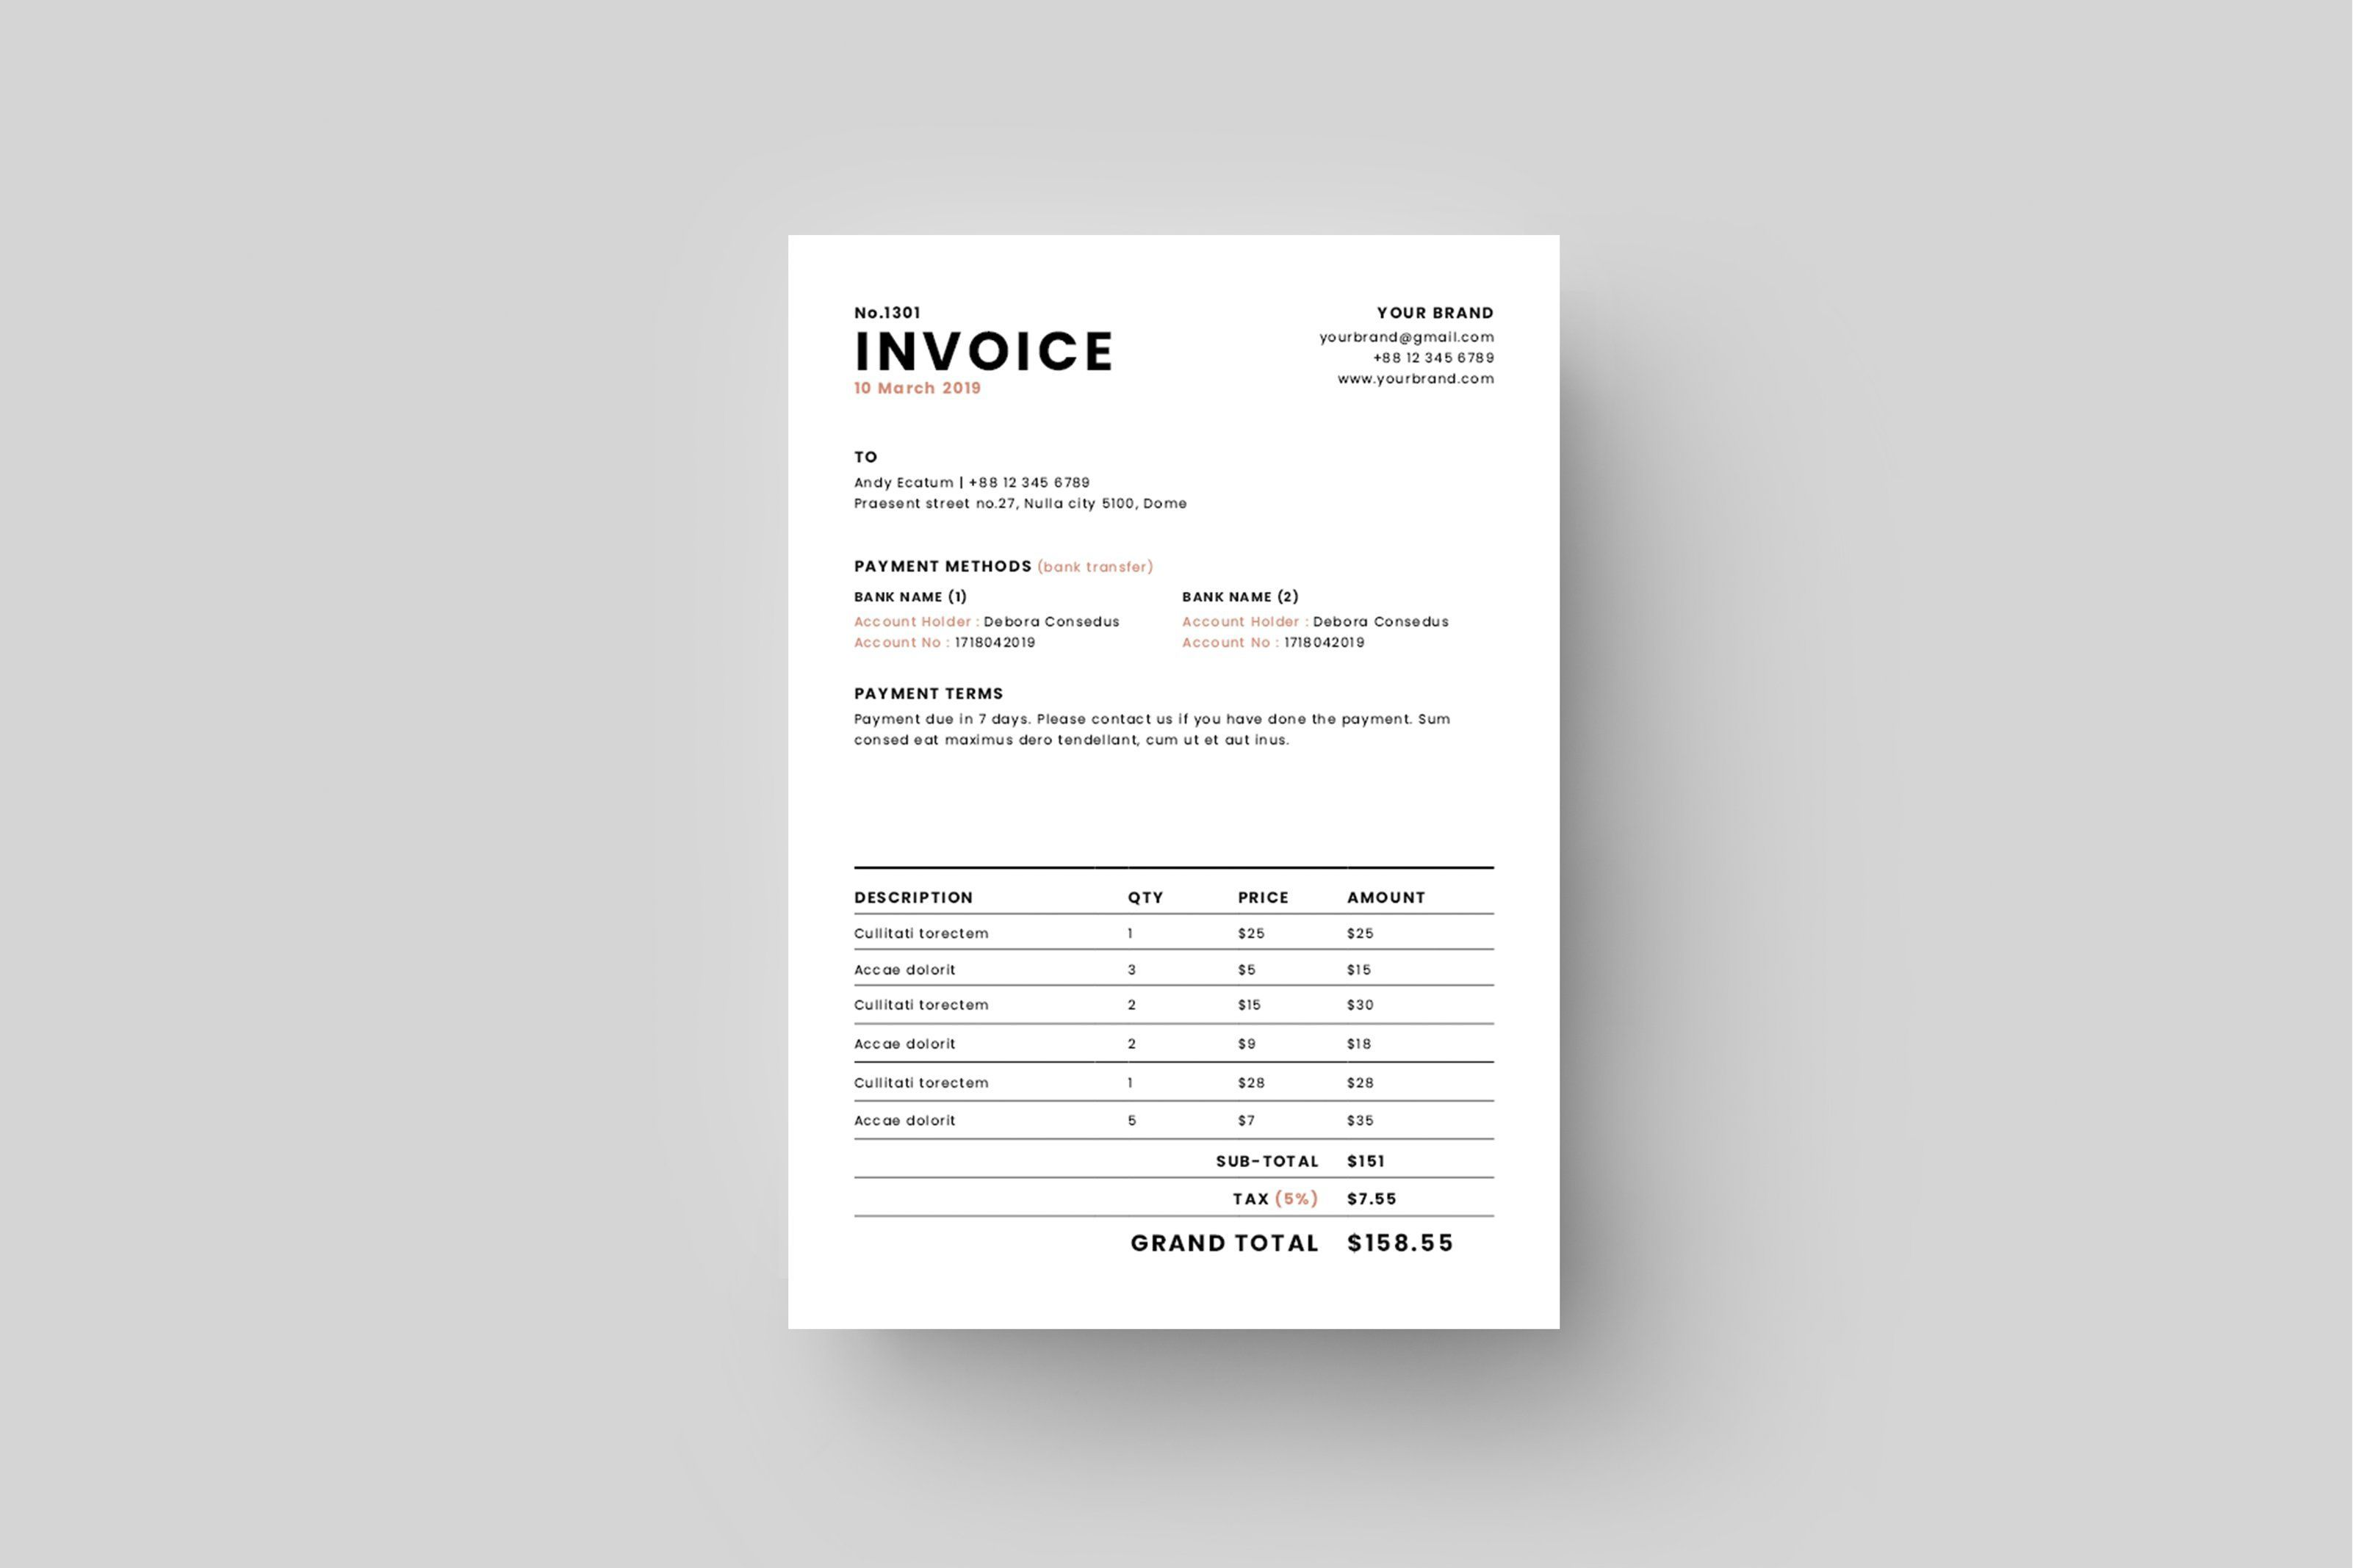 Invoice Invoice Design Stationery Templates Graphic Design Programs